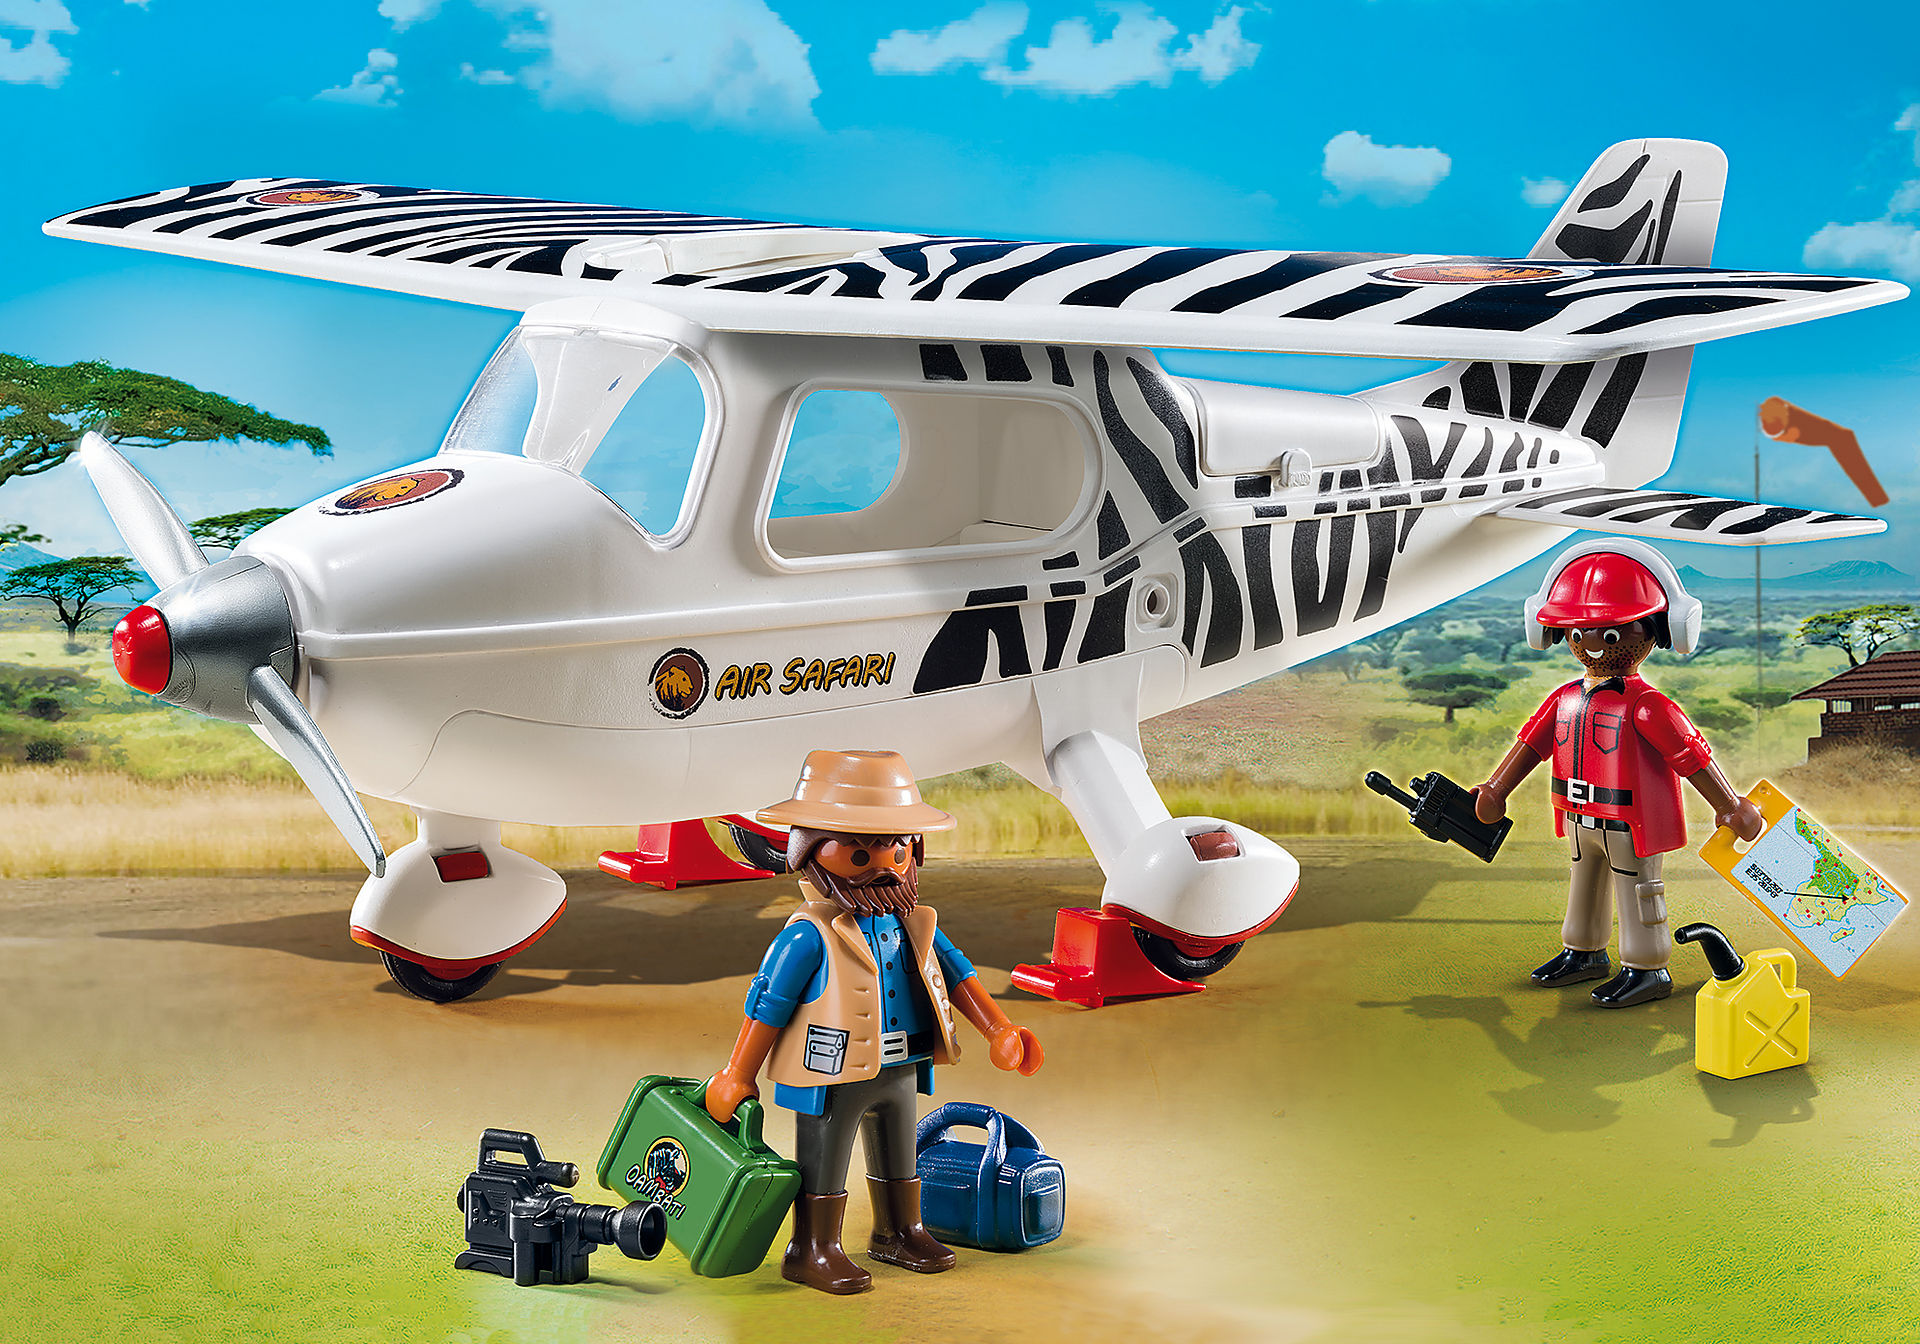 http://media.playmobil.com/i/playmobil/6938_product_detail/Avion avec explorateurs